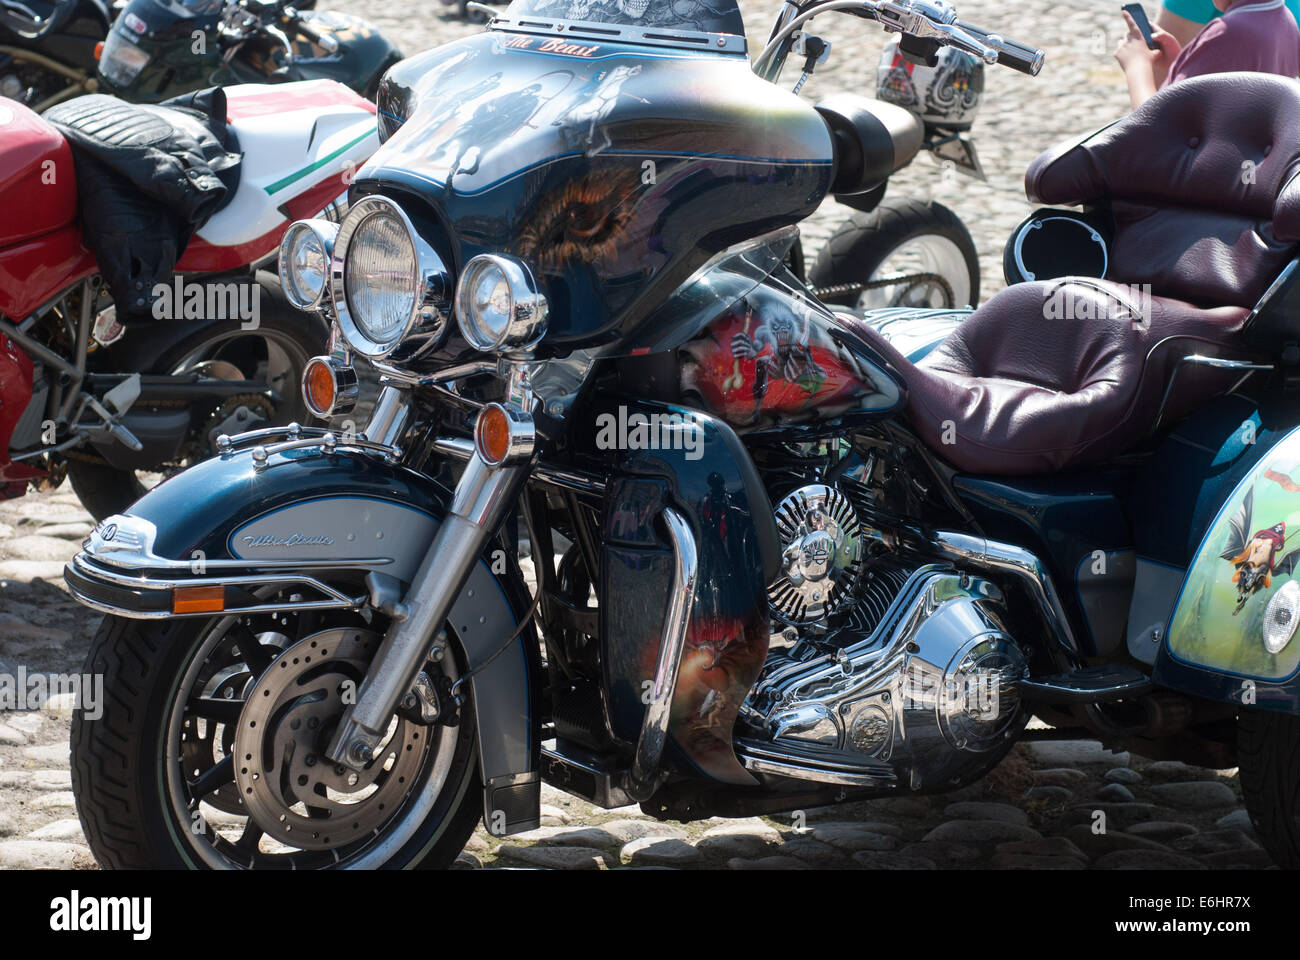 Harley Davidson motorcycle at a show in Berwick upon Tweed, Northumberland UK - Stock Image